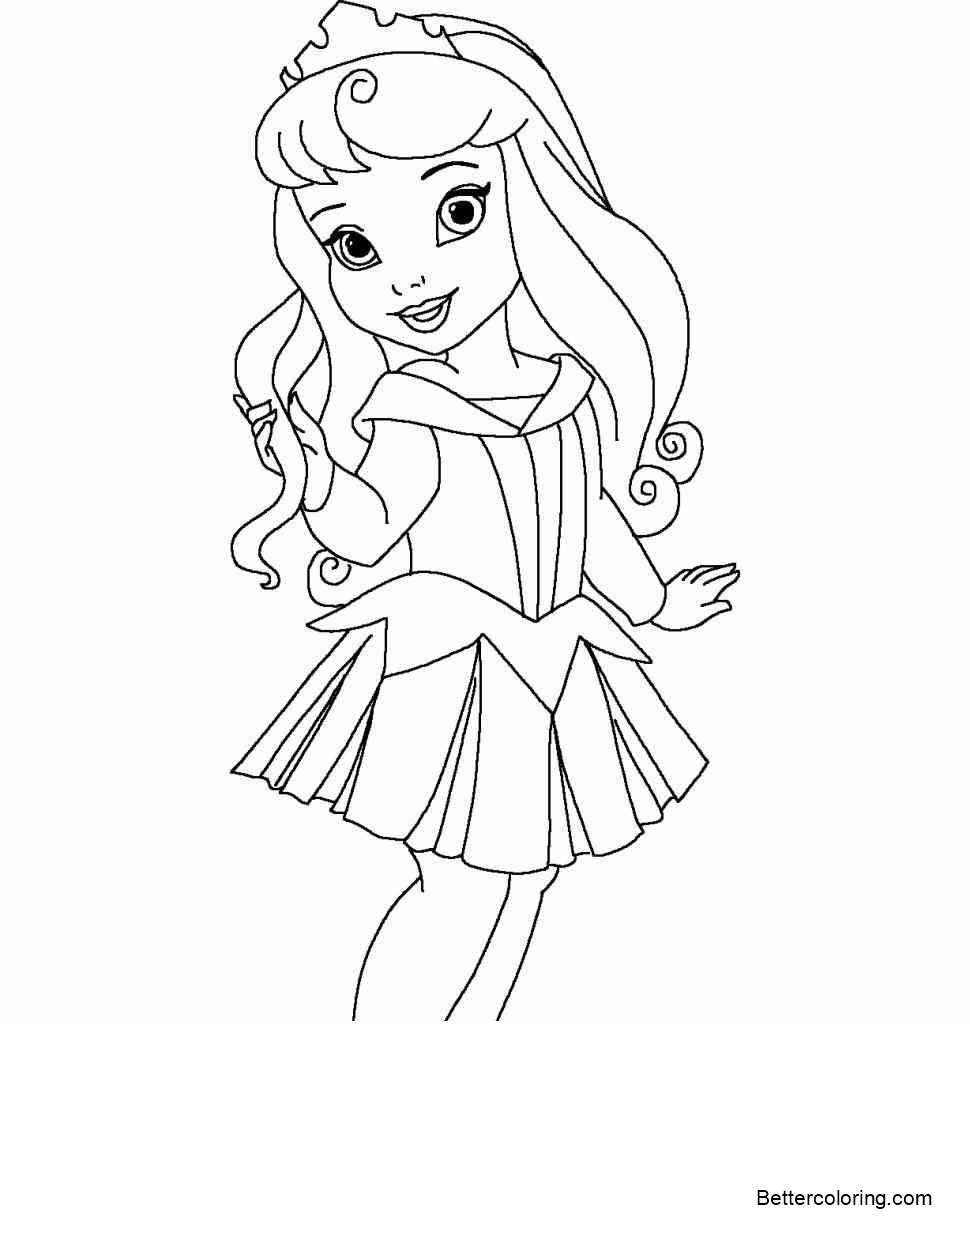 Free Simple Cute Baby Princess Coloring Pages printable